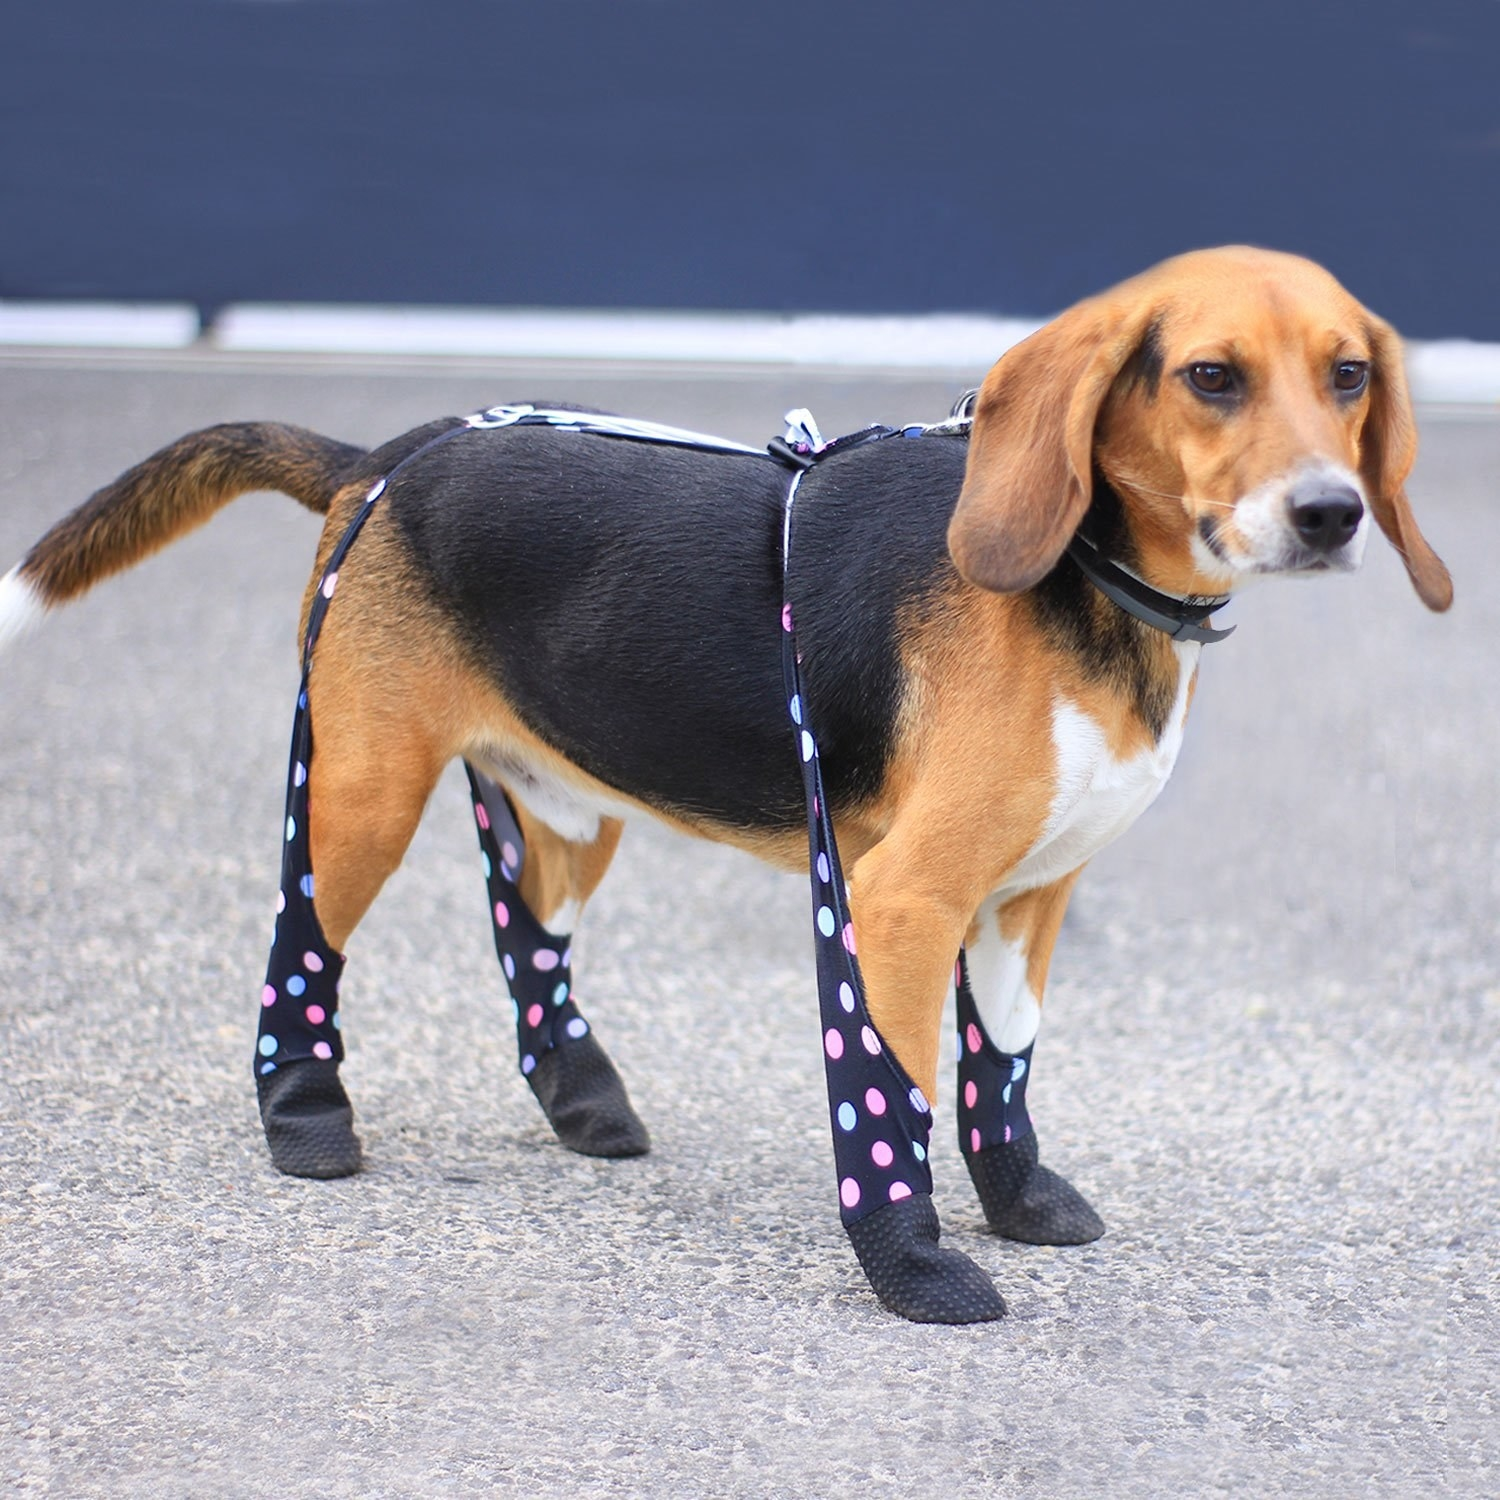 dog wearing leggings with foot booties at the end